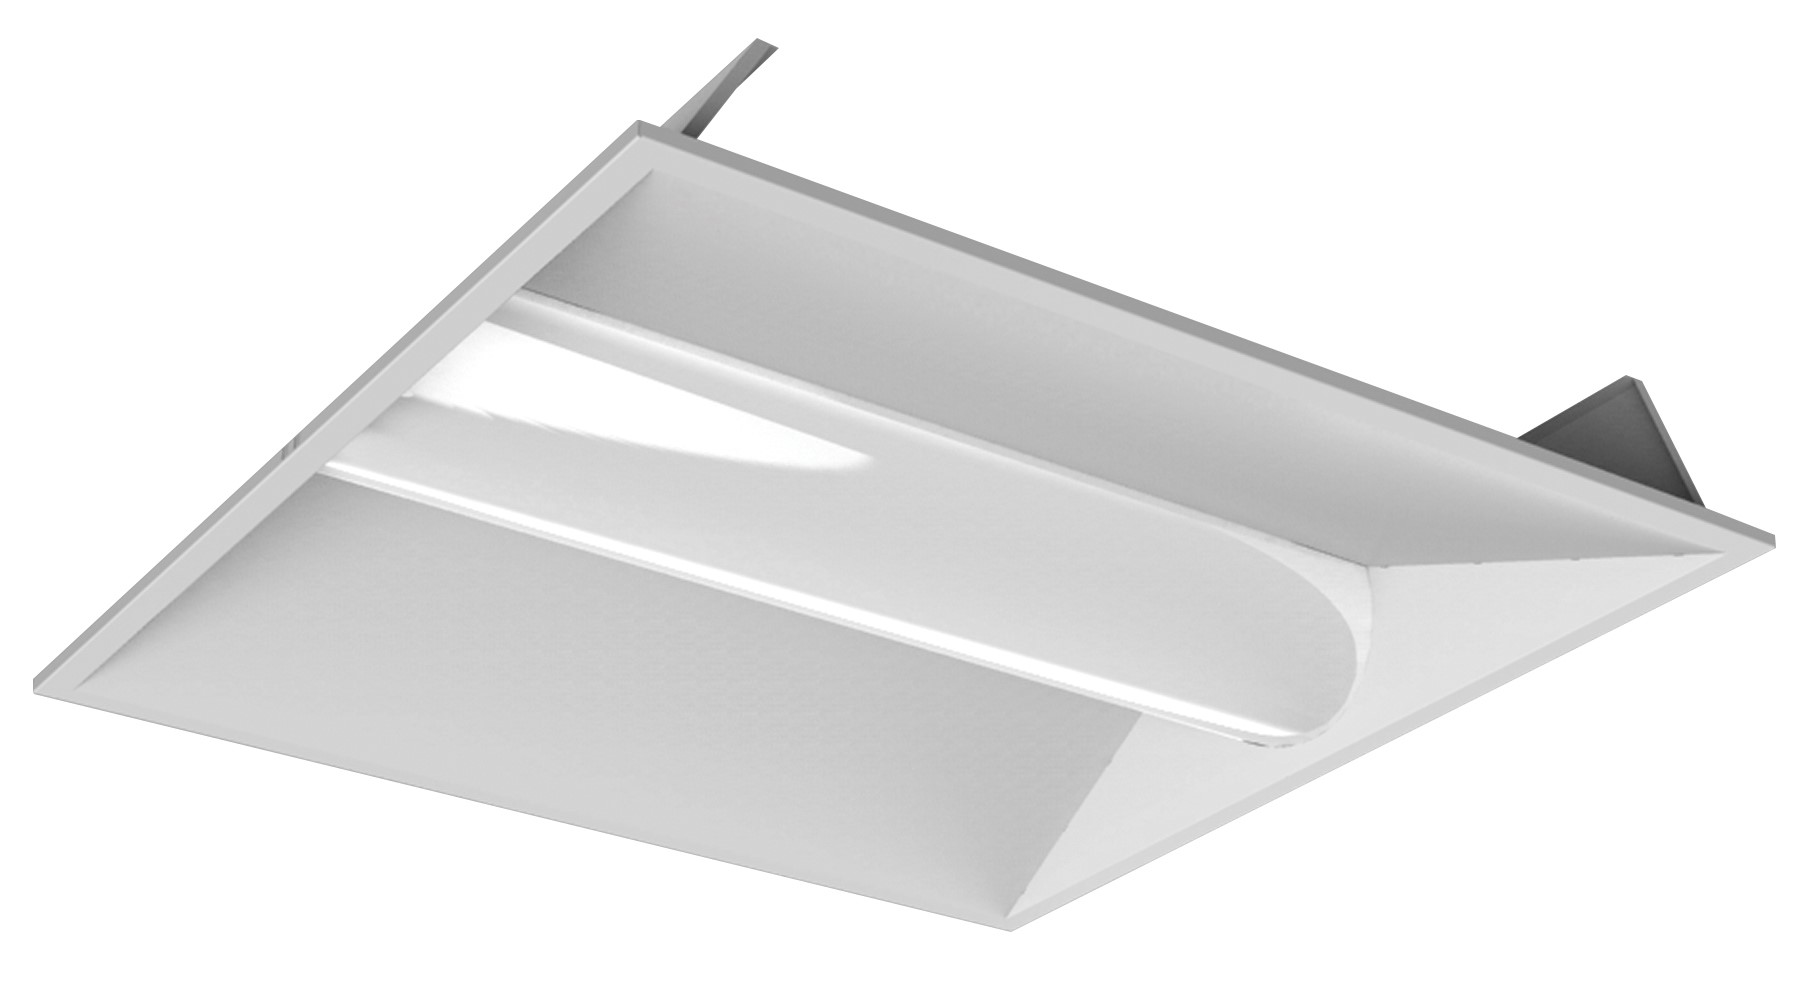 22TFR35/850/LED 80891 LED VOLUMETRIC PANEL 2X2 35W 5000K 0-10V DIMMABLE